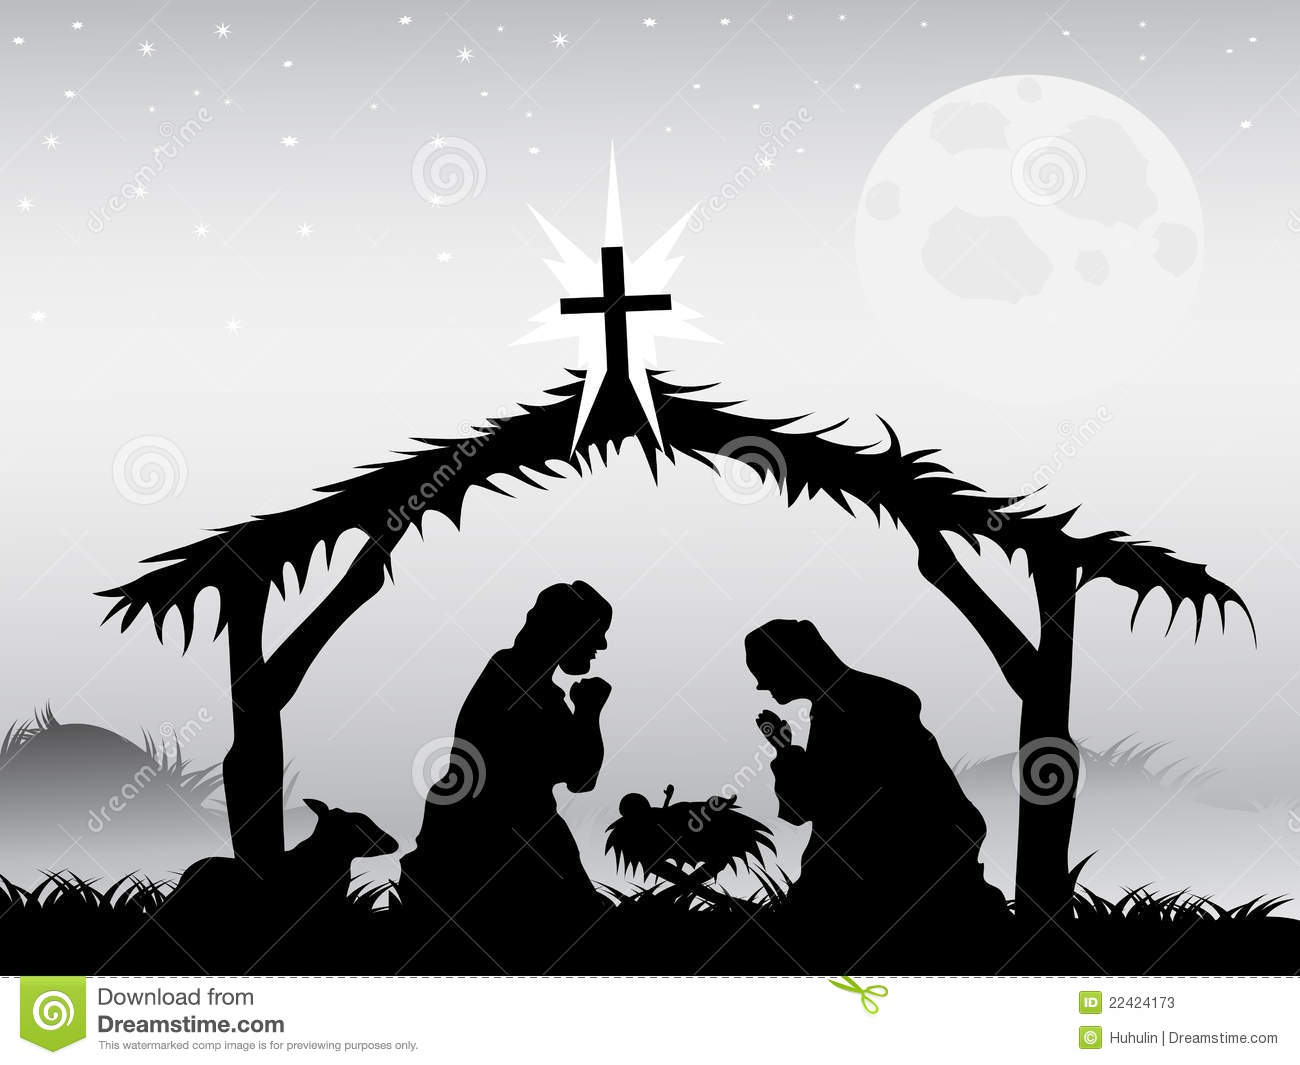 image relating to Nativity Scene Silhouette Printable called Nativity scene,vector inventory vector. Example of christ